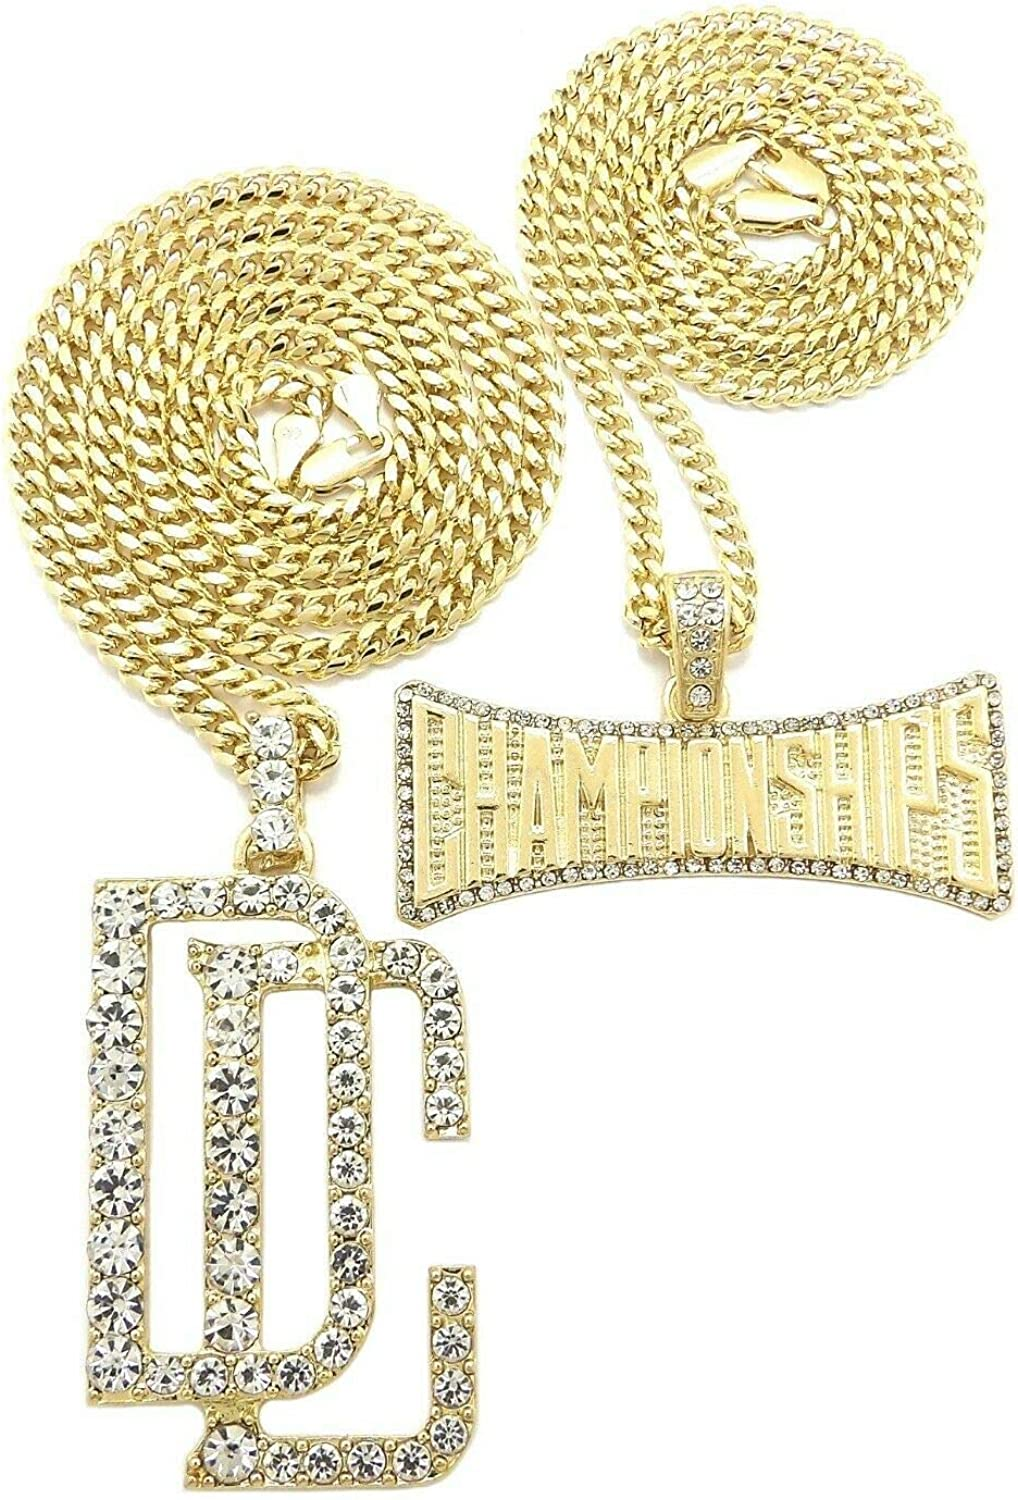 BLINGFACTORY Dream Chasers DC /& Championship Pendant /& 20 24 Cuban Chain Hip HOP Necklace